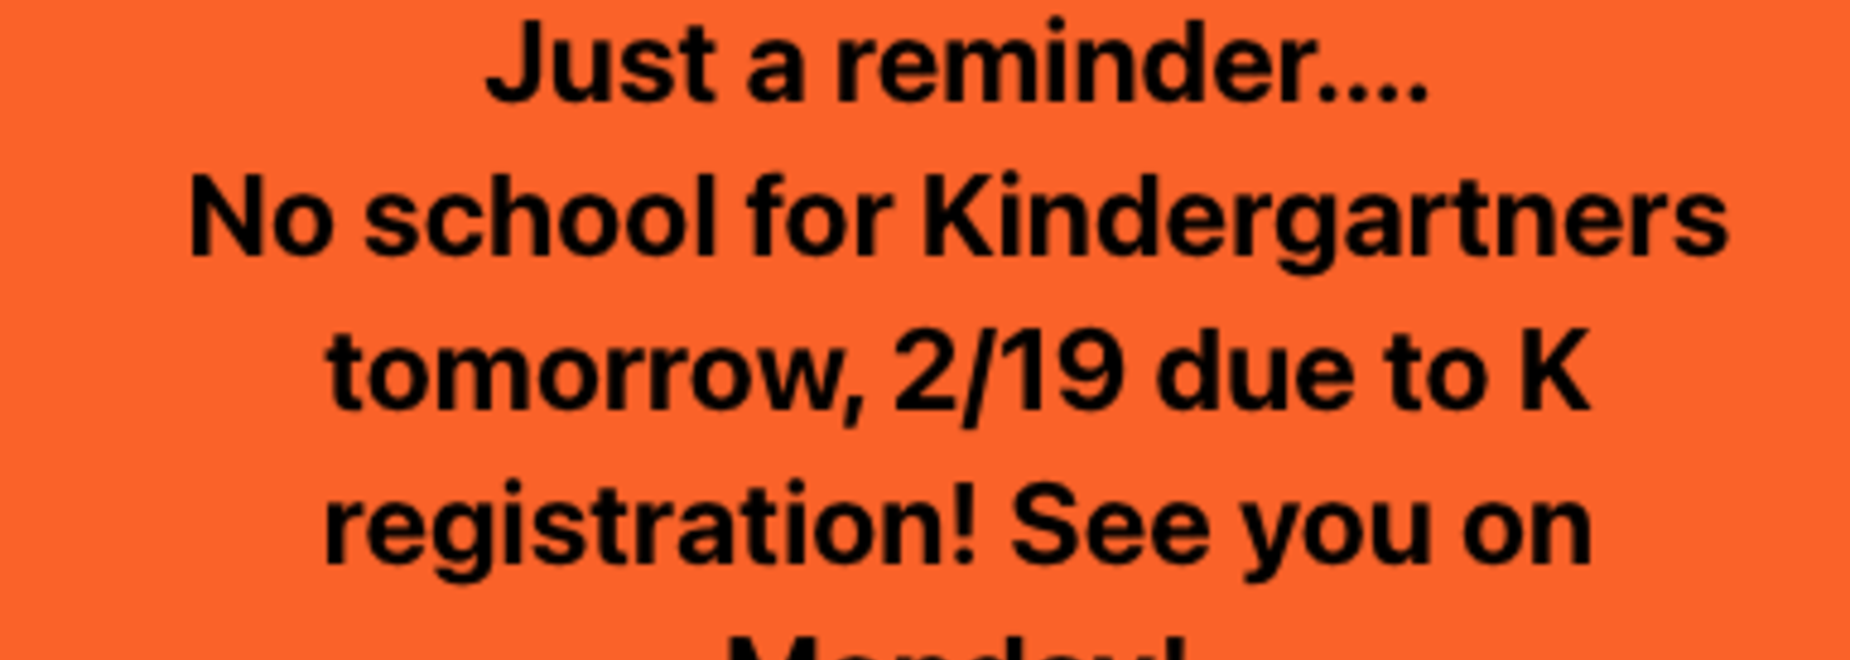 Just a reminder.... No school for Kindergartners tomorrow, 2/19 due to K registration! See you on Monday!